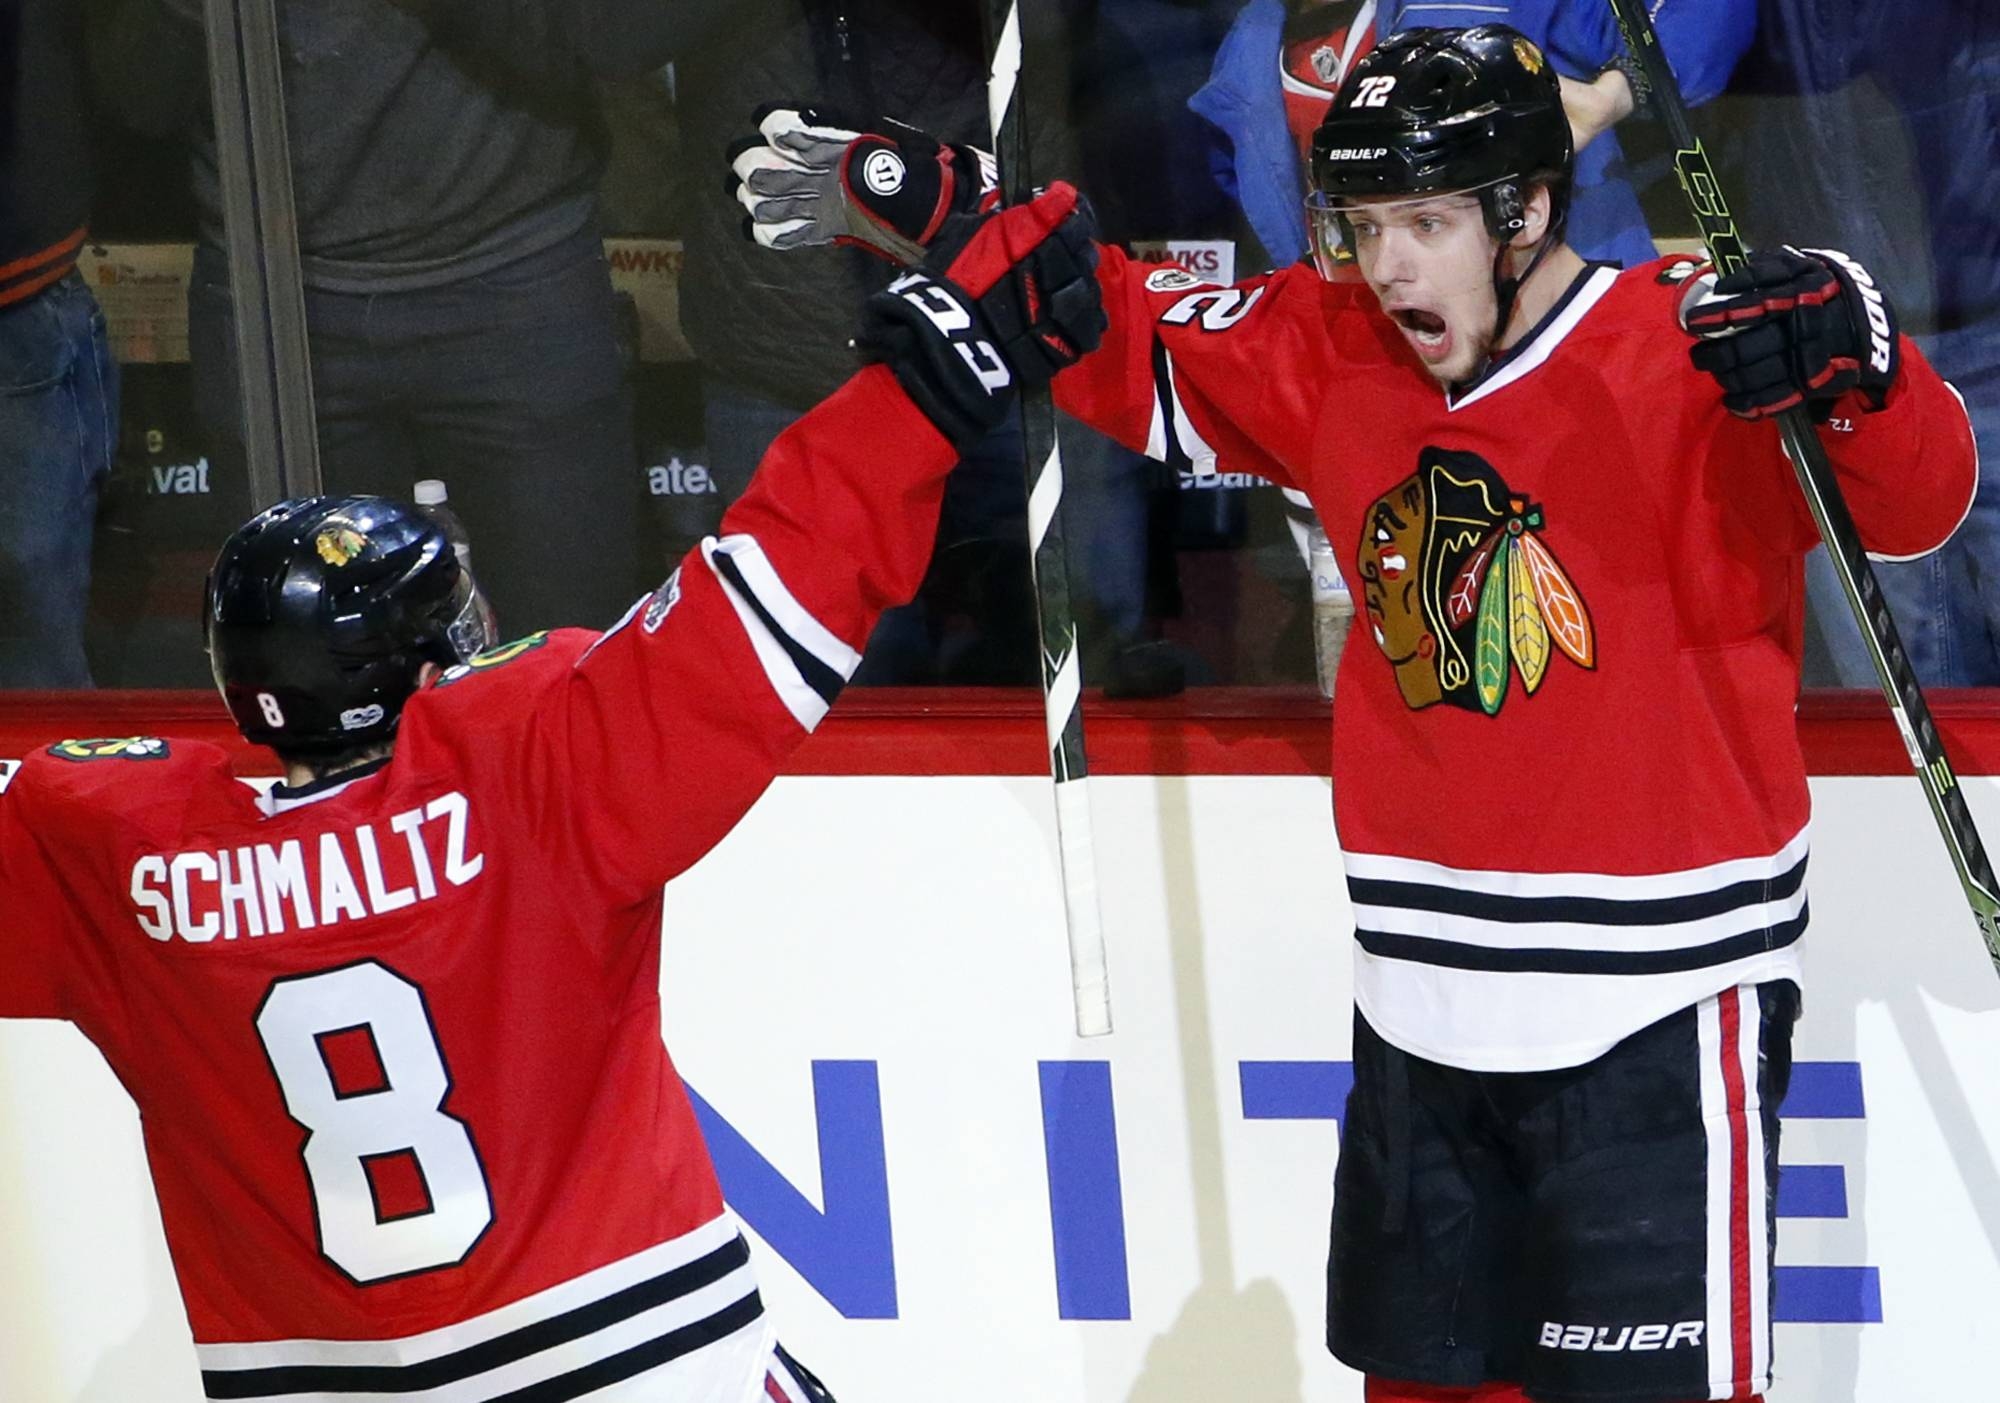 Chicago Blackhawks left wing Artemi Panarin, right, reacts as he celebrates with center Nick Schmaltz after scoring his goal against the Colorado Avalanche during the third period of an NHL hockey game Sunday, March 19, 2017, in Chicago. The Blackhawks won 6-3. (AP Photo/Nam Y. Huh)